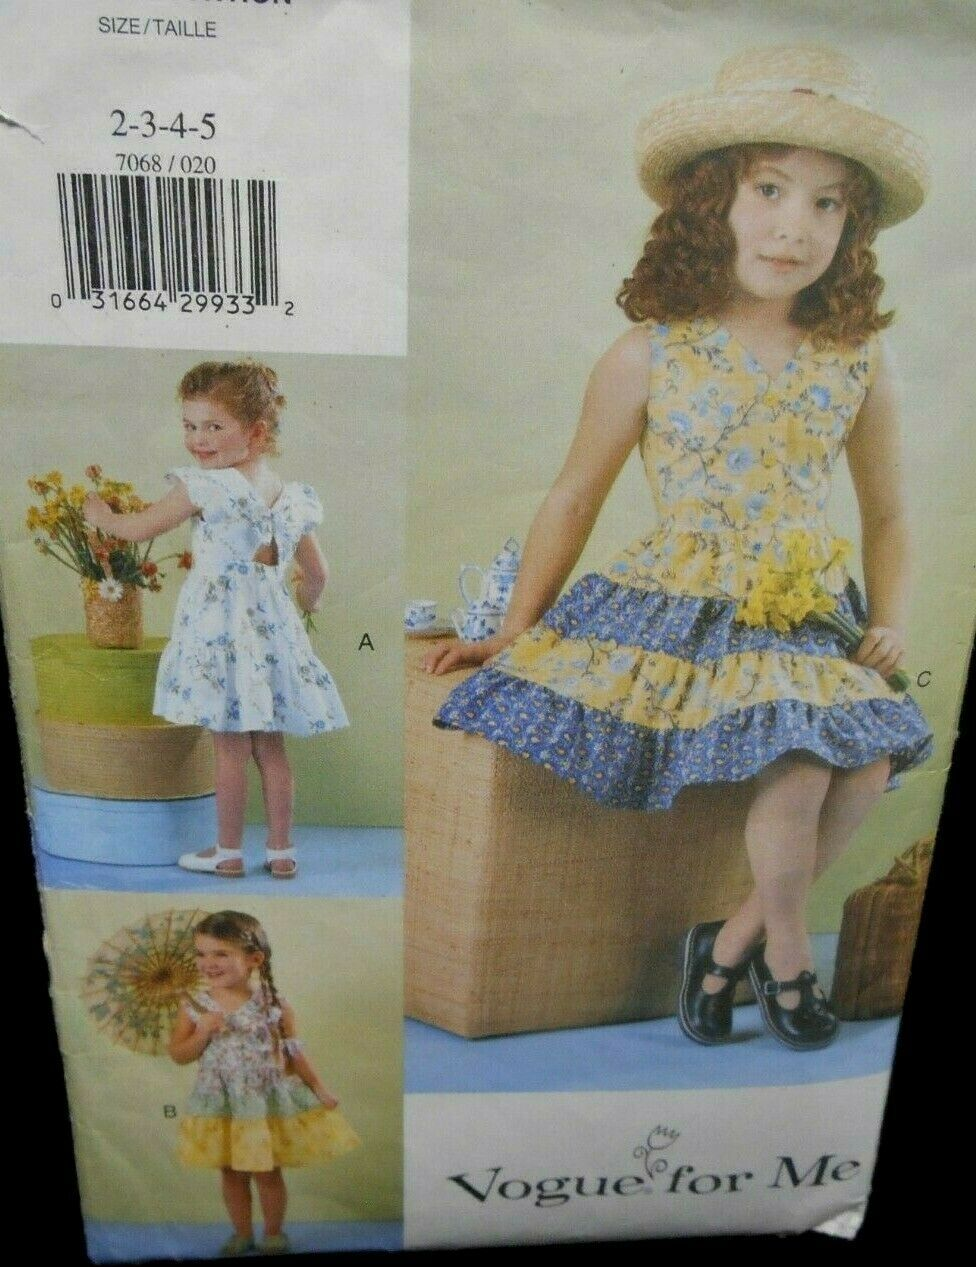 Vogue 7068 Childrens Girls 2-5 tiered skirt ruffles mid knee self lined bodice